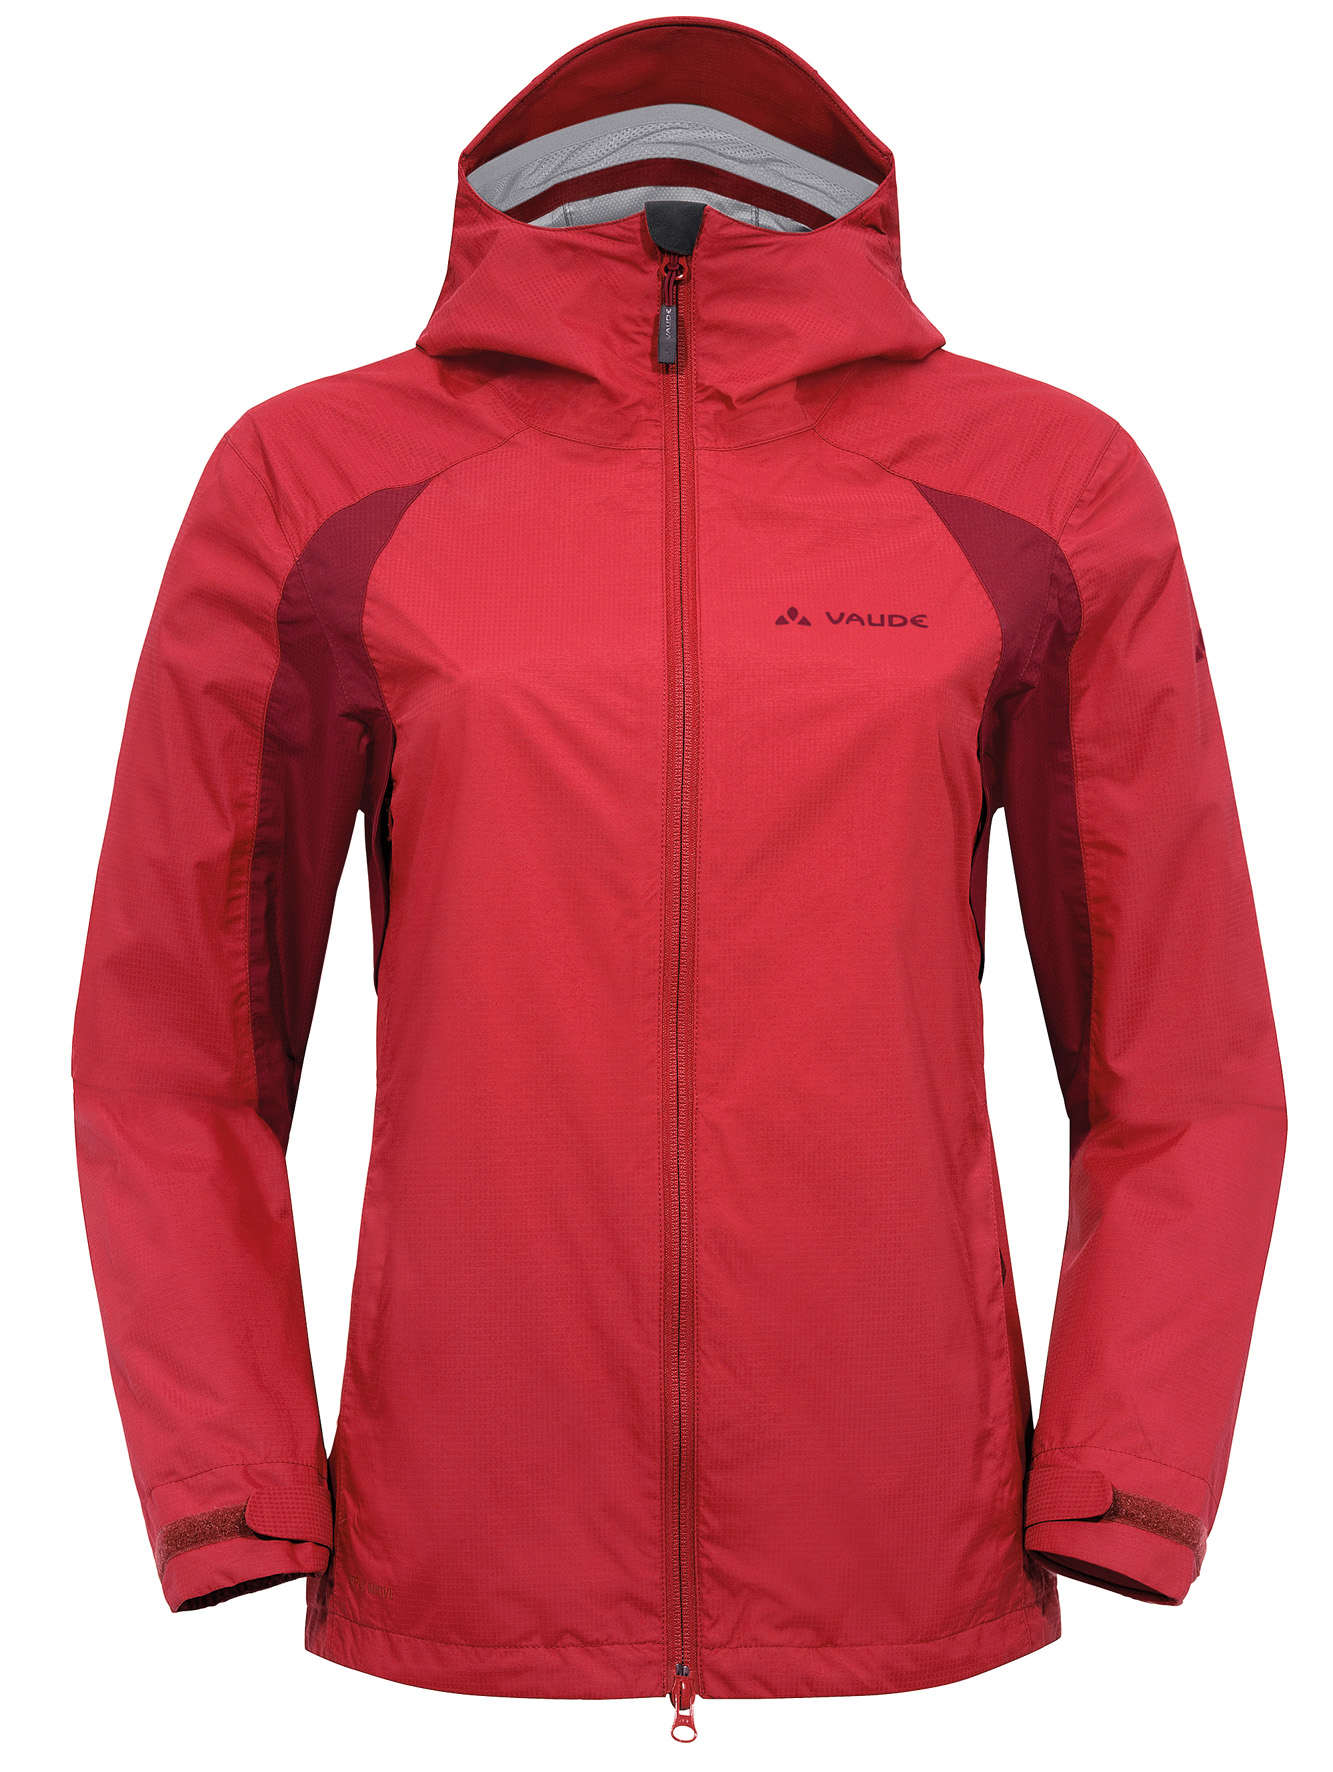 VAUDE Women´s Yaras Jacket red Größe 44 - schneider-sports